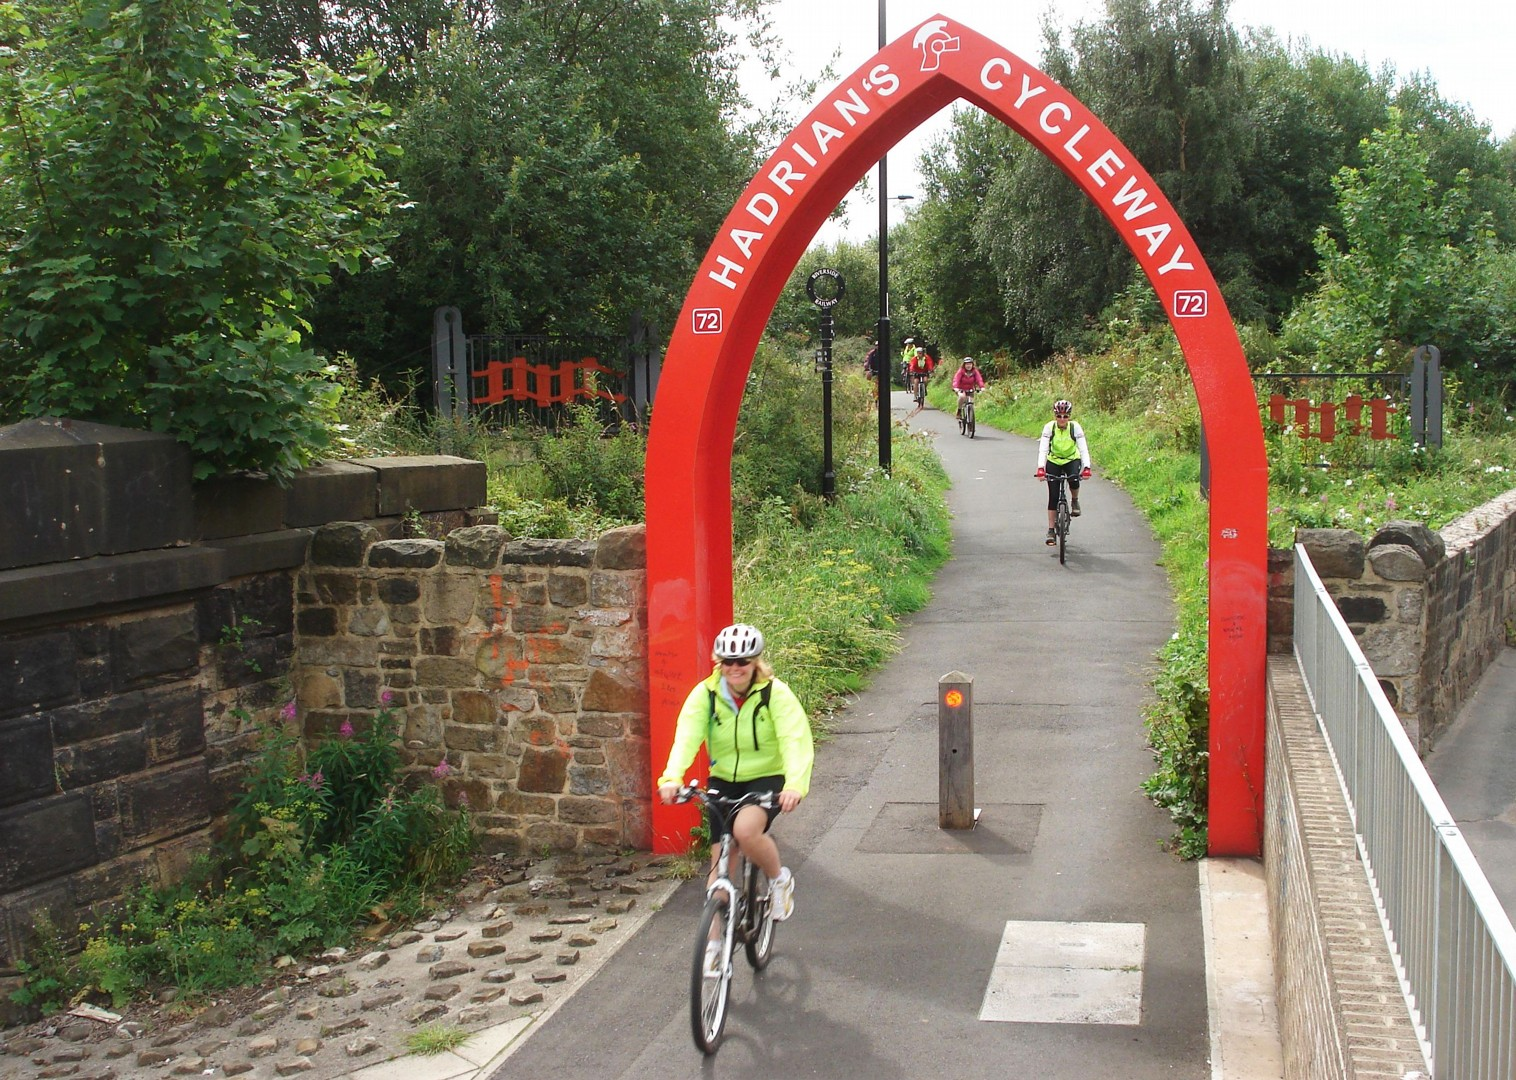 hadrians-cycleway-cycling-trip-self-guided-family-holiday.jpg - UK - Hadrian's Cycleway - Family Cycling